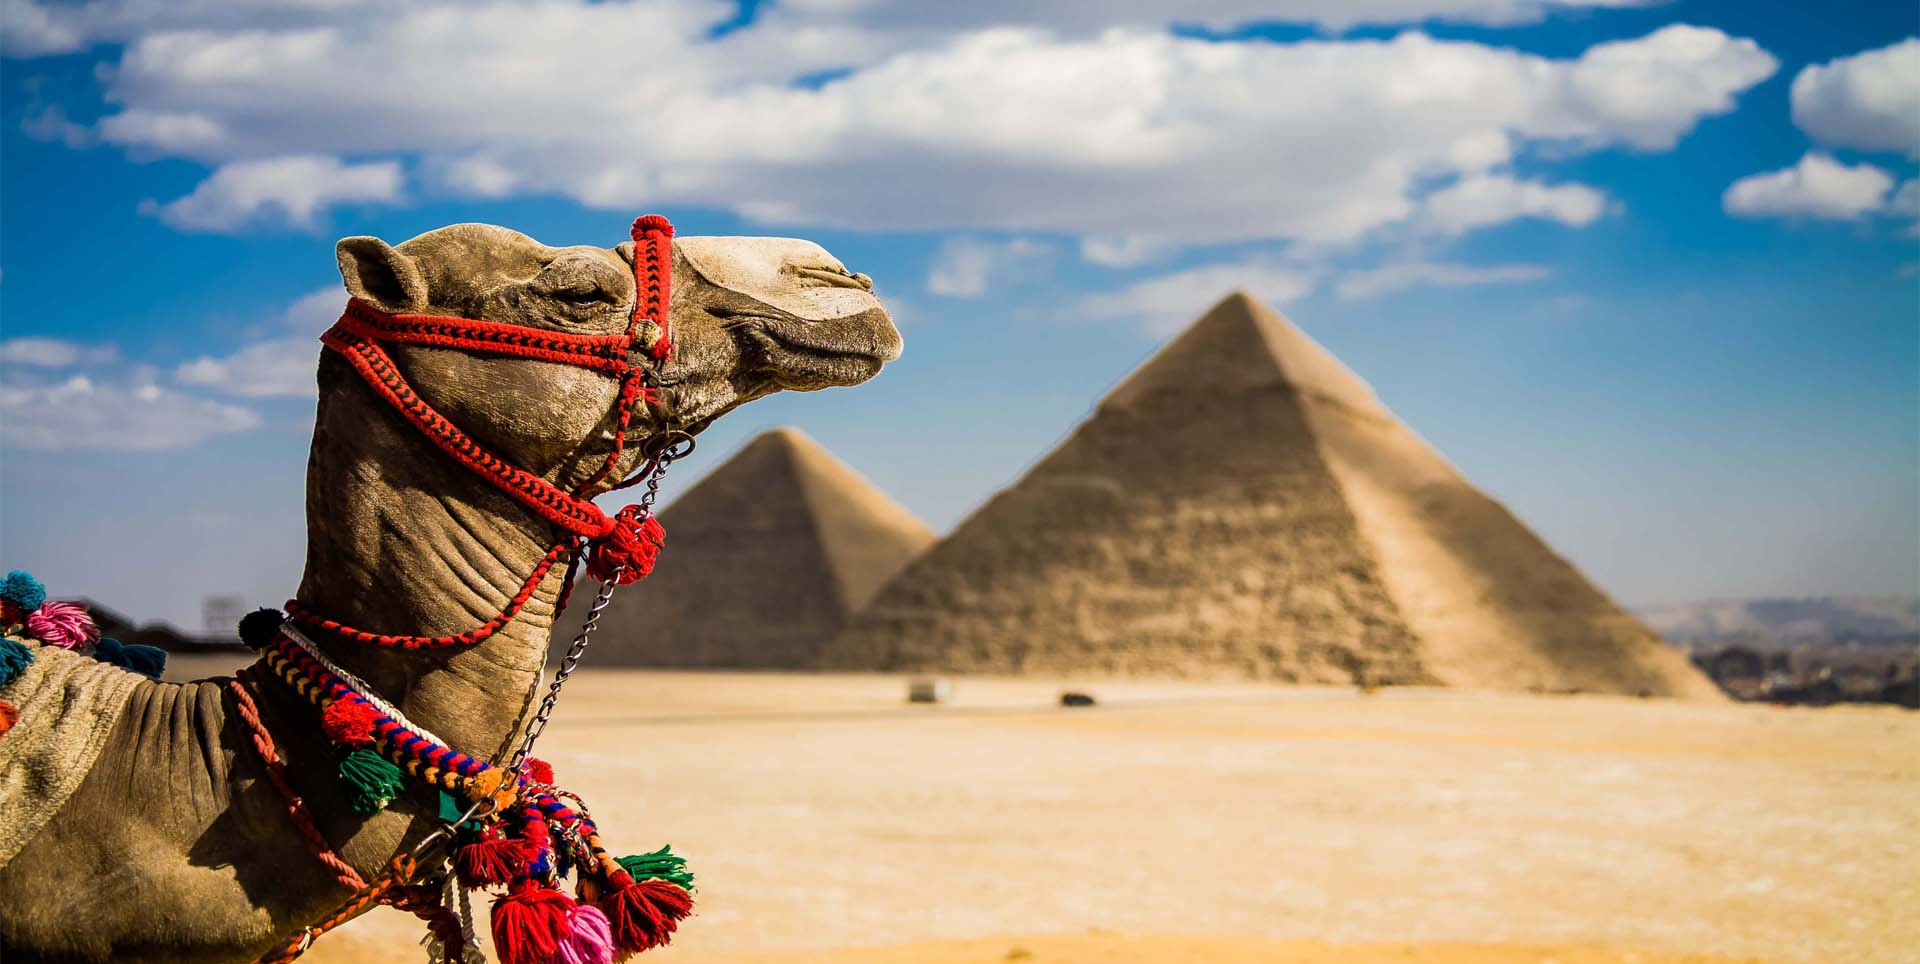 Pyramids of Giza and Cairo trip from Aswan by flight